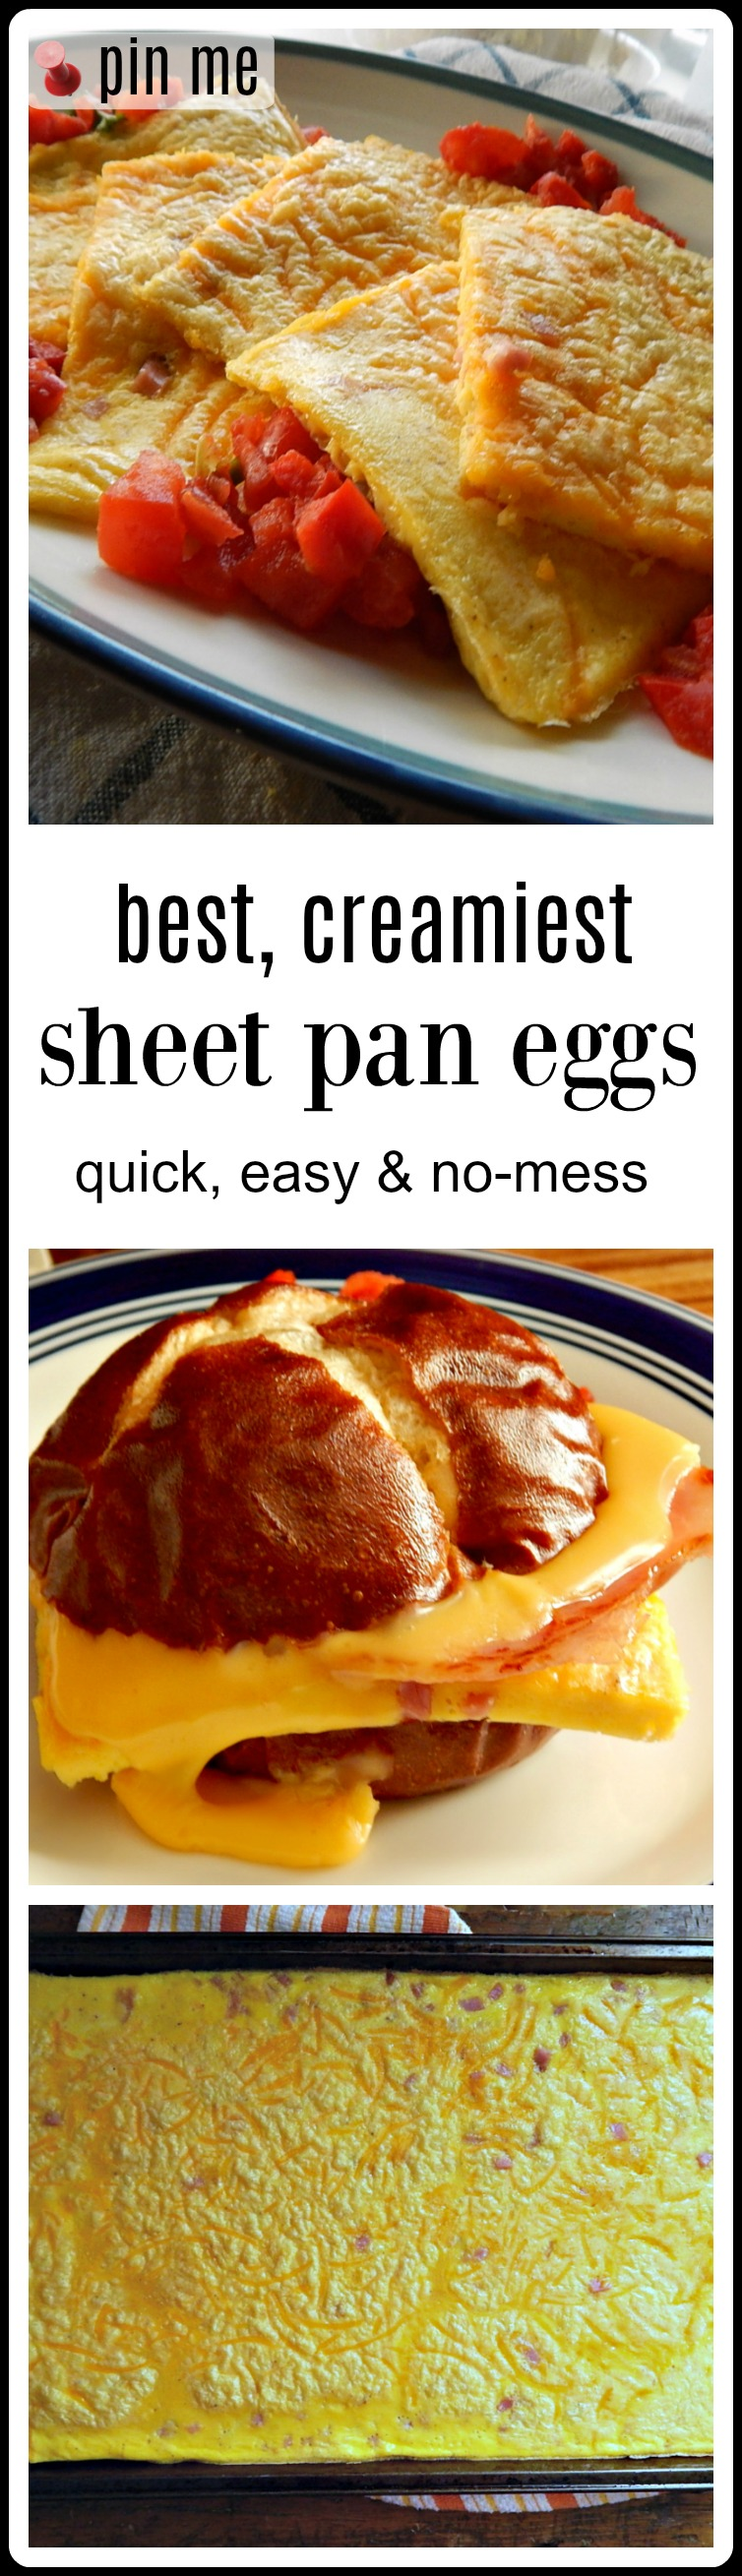 The Best Creamy Sheet Pan Eggs - fast, easy & quick, these turn out creamy & delish. Perfect for Breakfast or make ahead food prep. #SheetPanEggs #BestSheetPanEggs #BestCreamySheetPanEggs